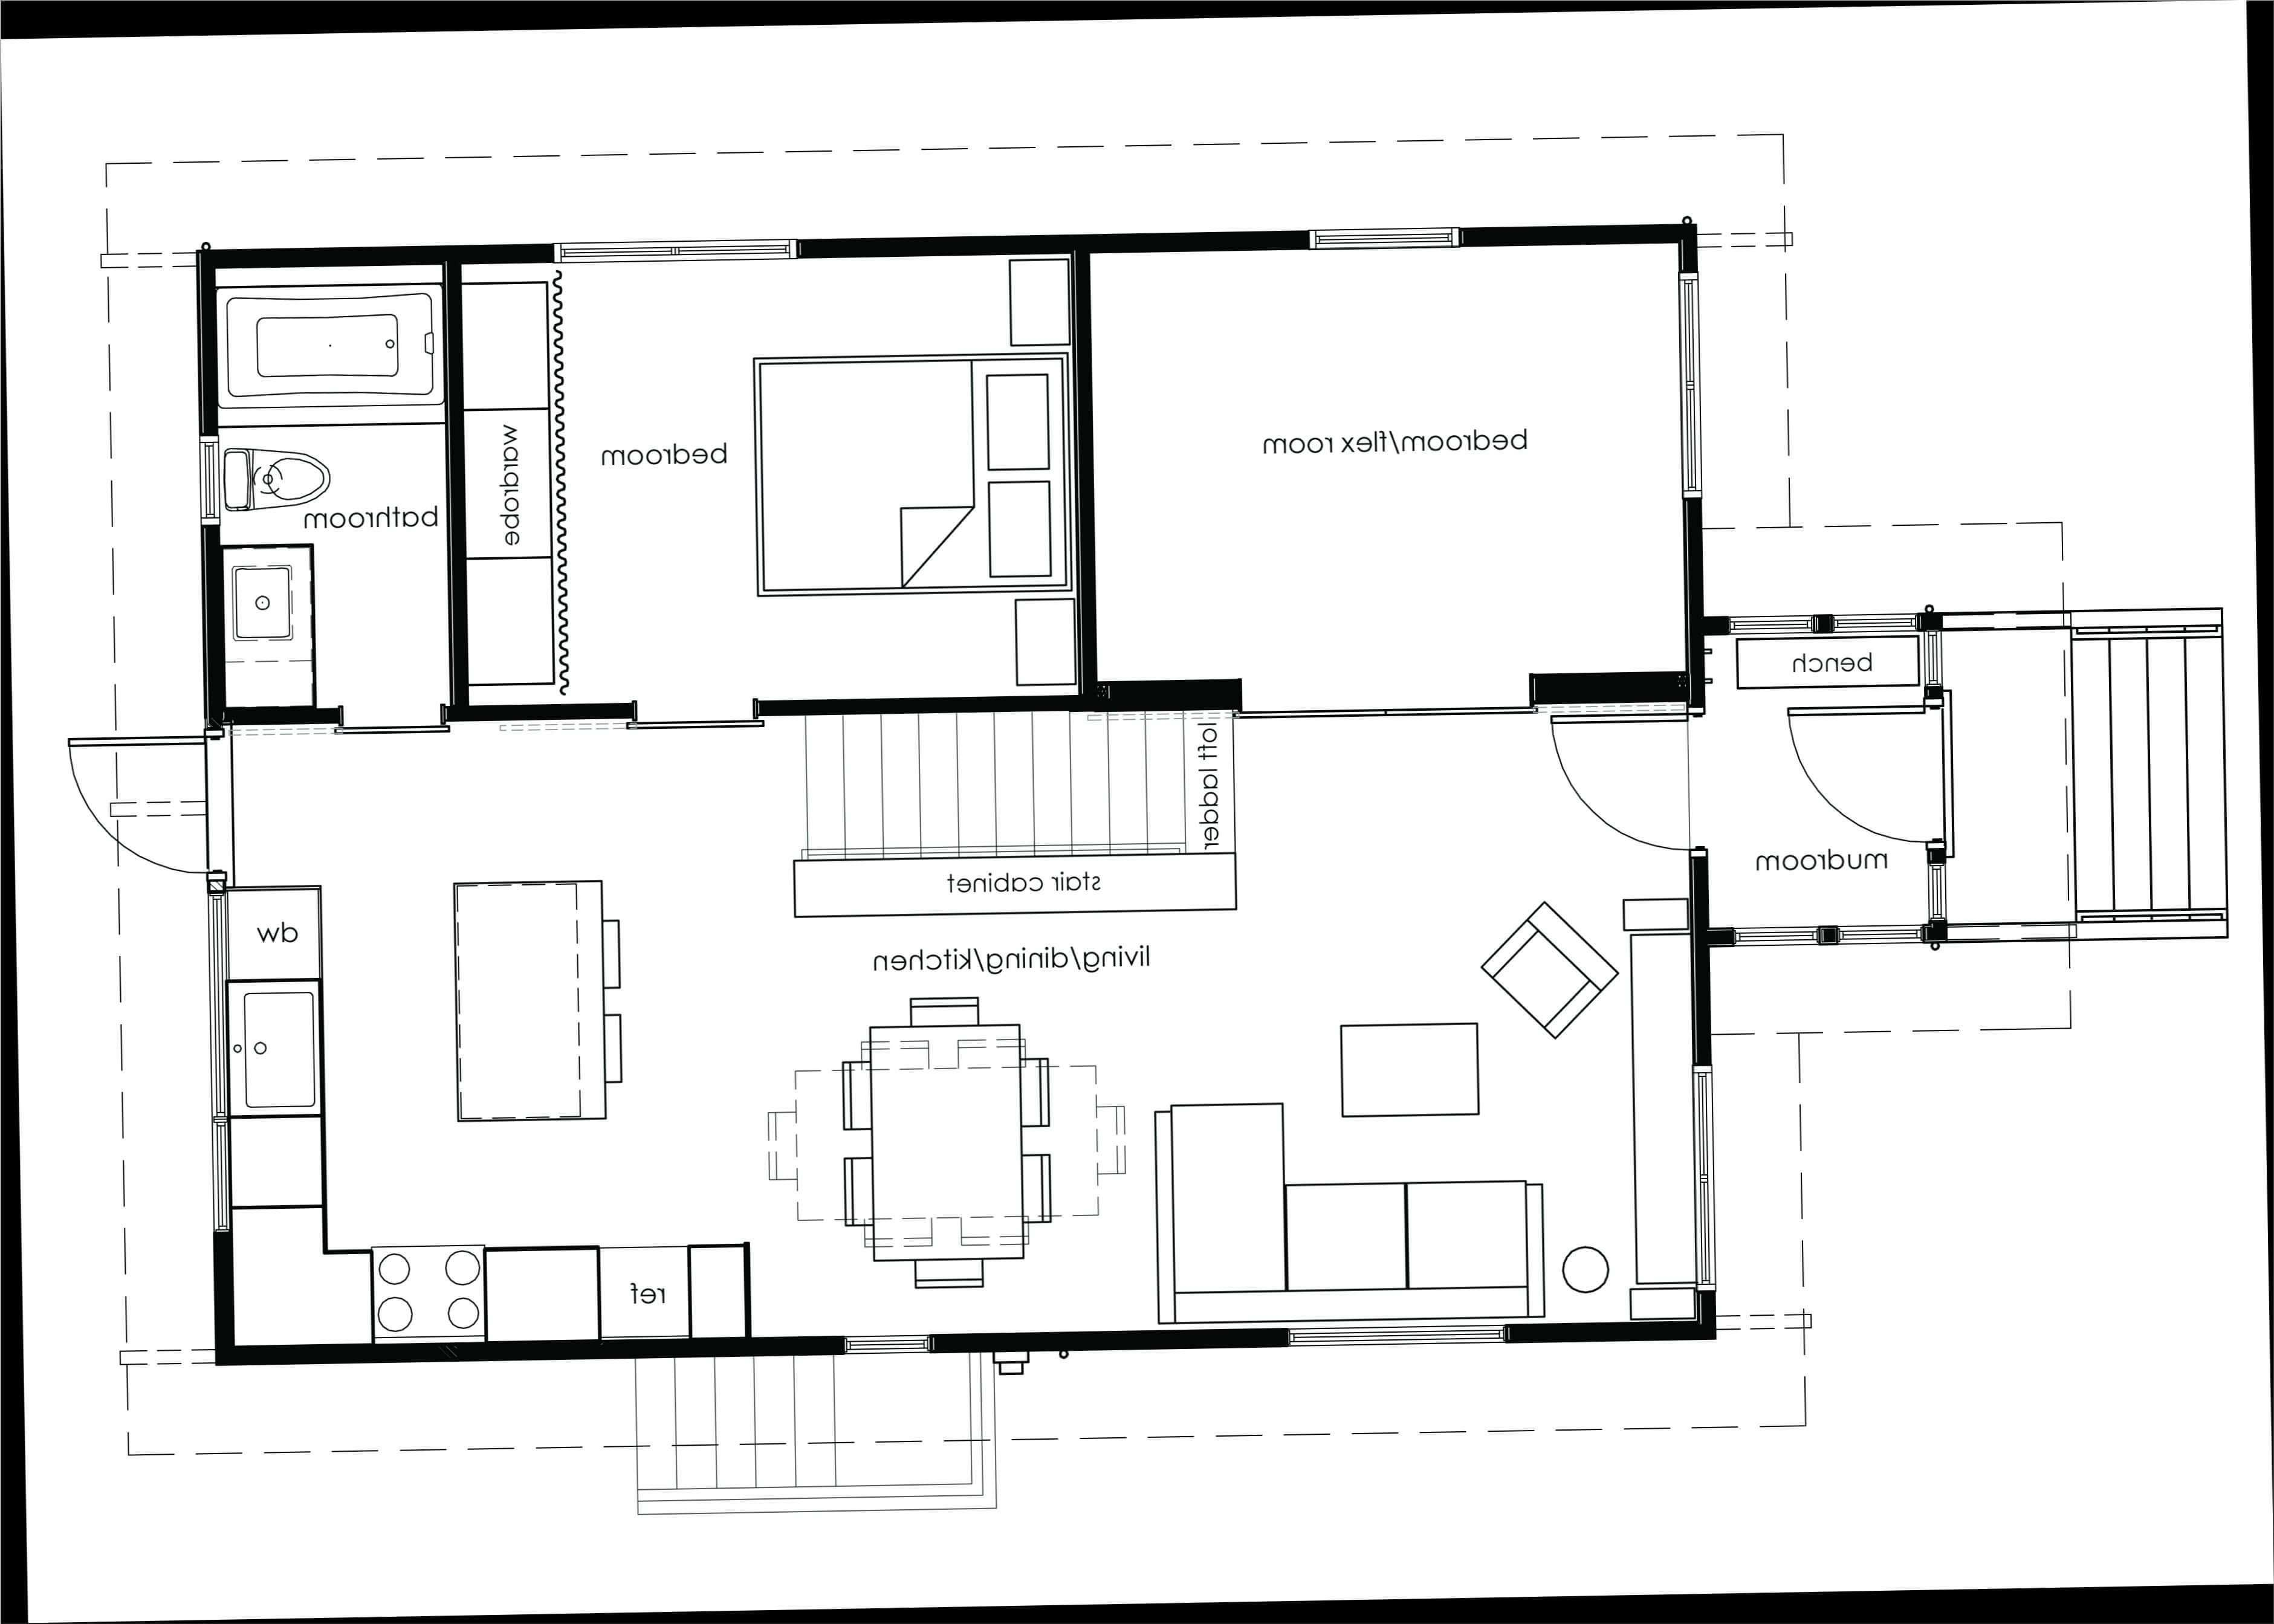 Interior Design Is The Process Of Improving The State Of An Internal Space Of A Open Plan Kitchen Dining Living Living Room Floor Plans Open Floor Plan Kitchen